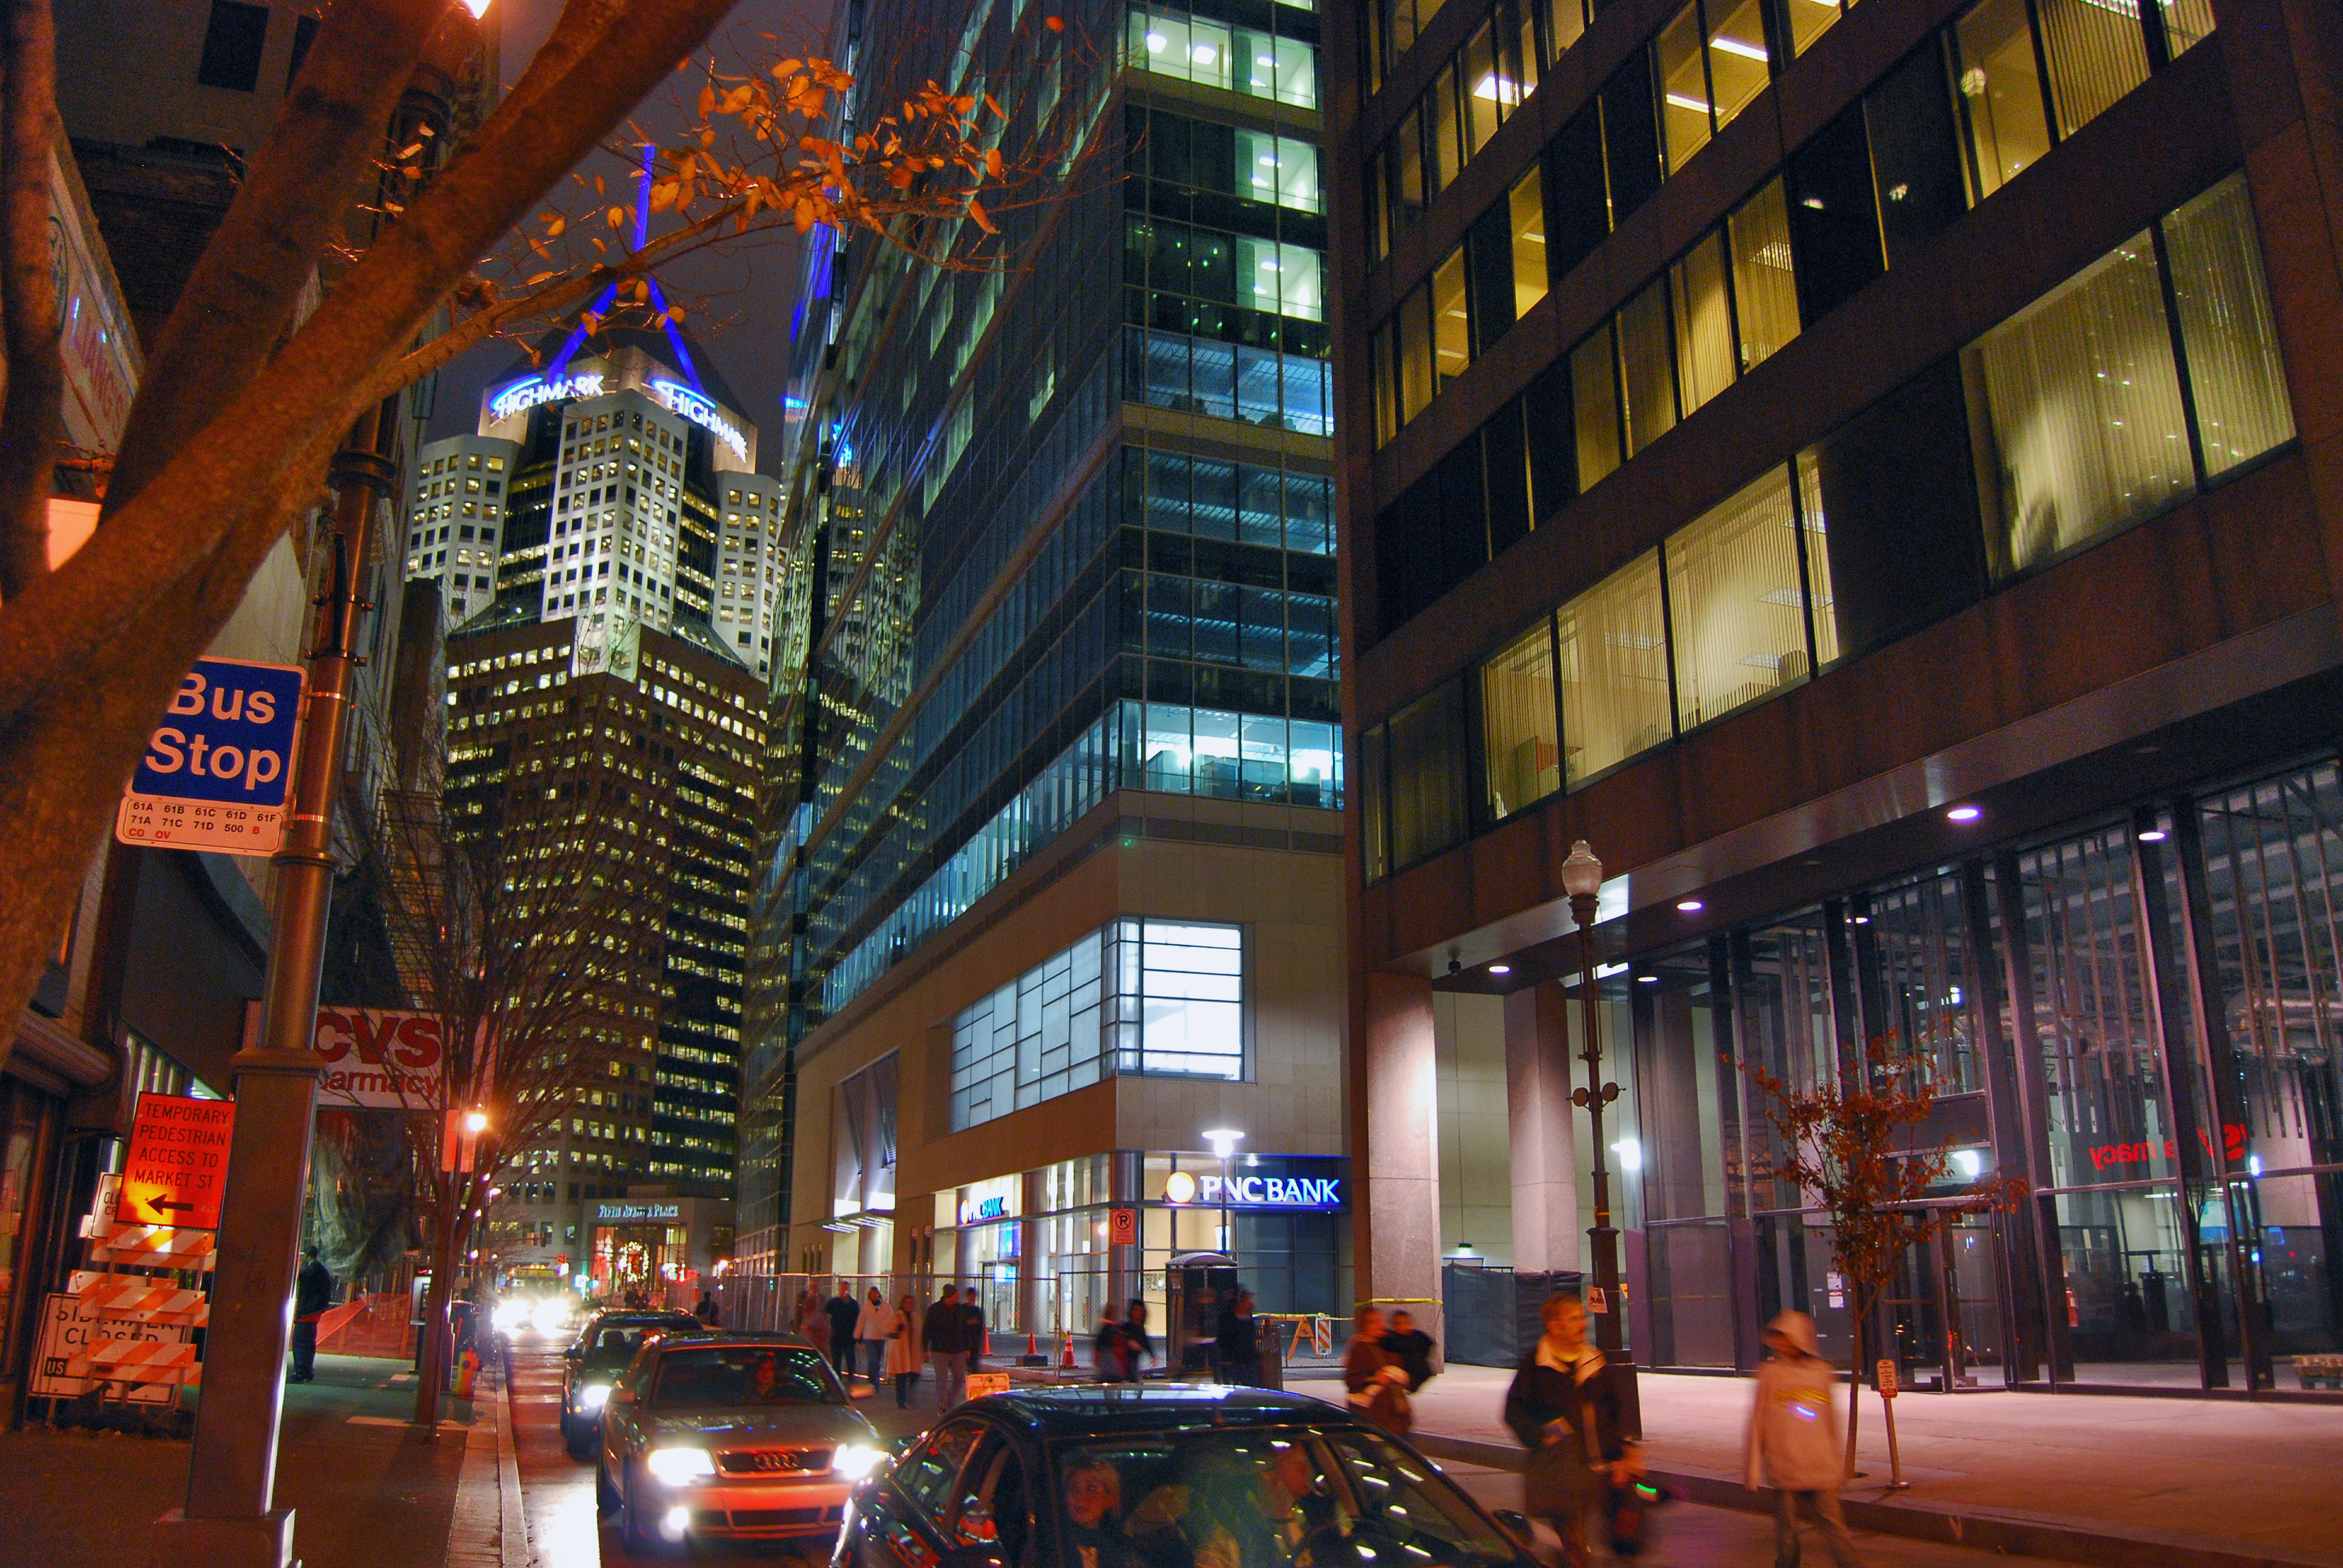 downtown pittsburgh at night 2